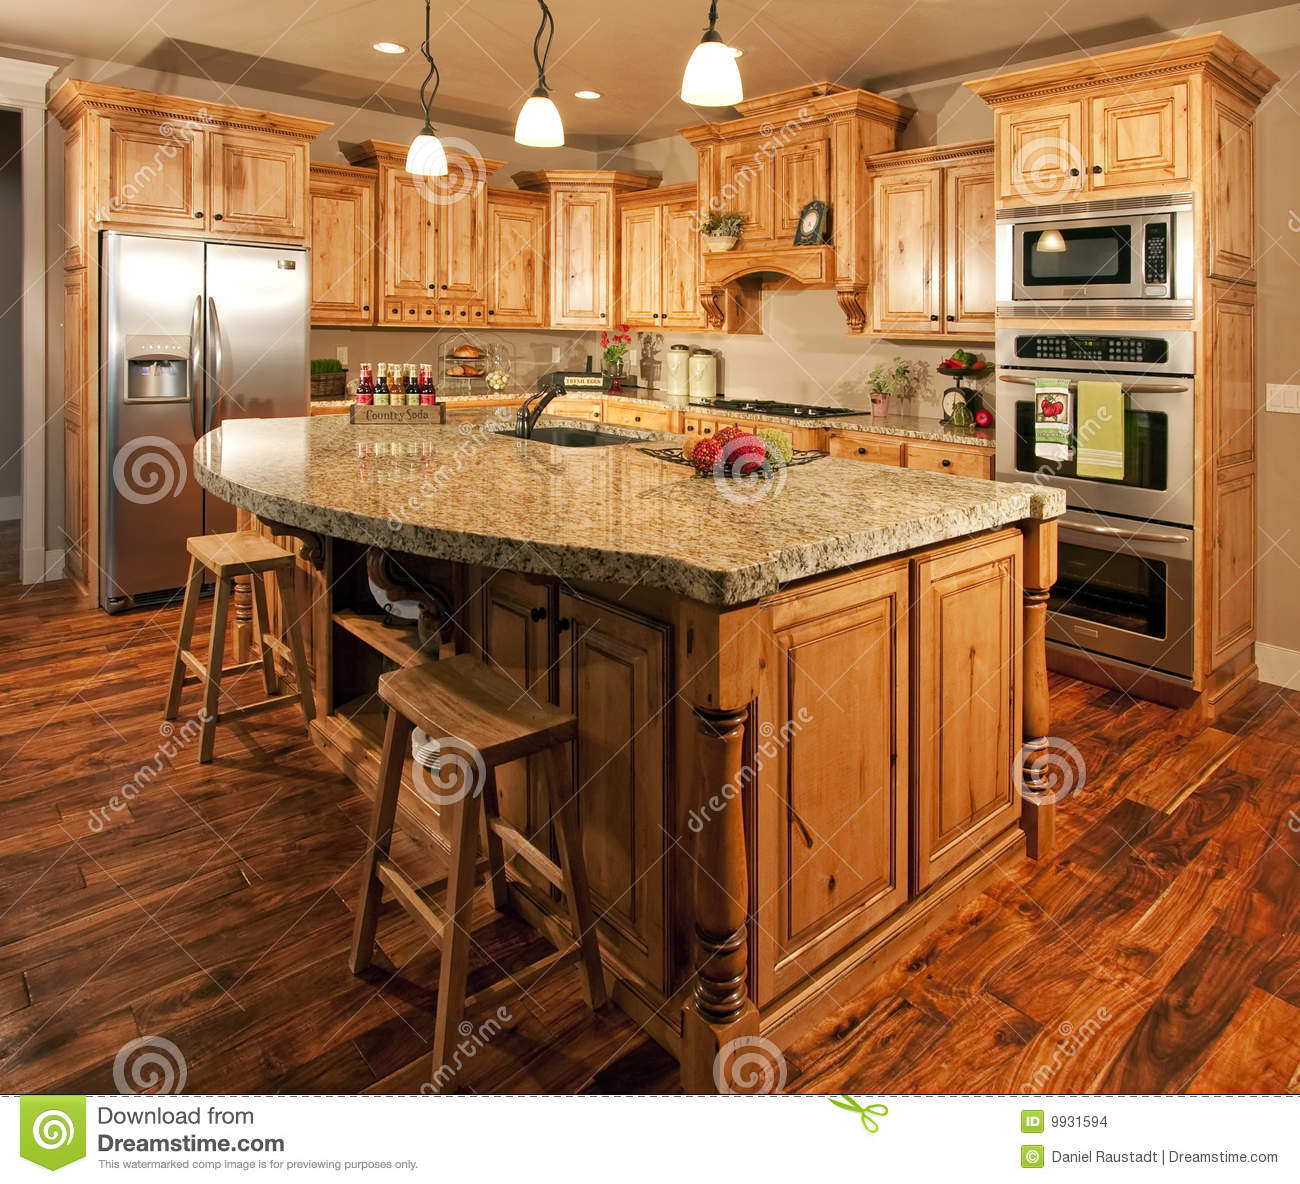 Modern home kitchen center island stock images image for Kitchen center island cabinets